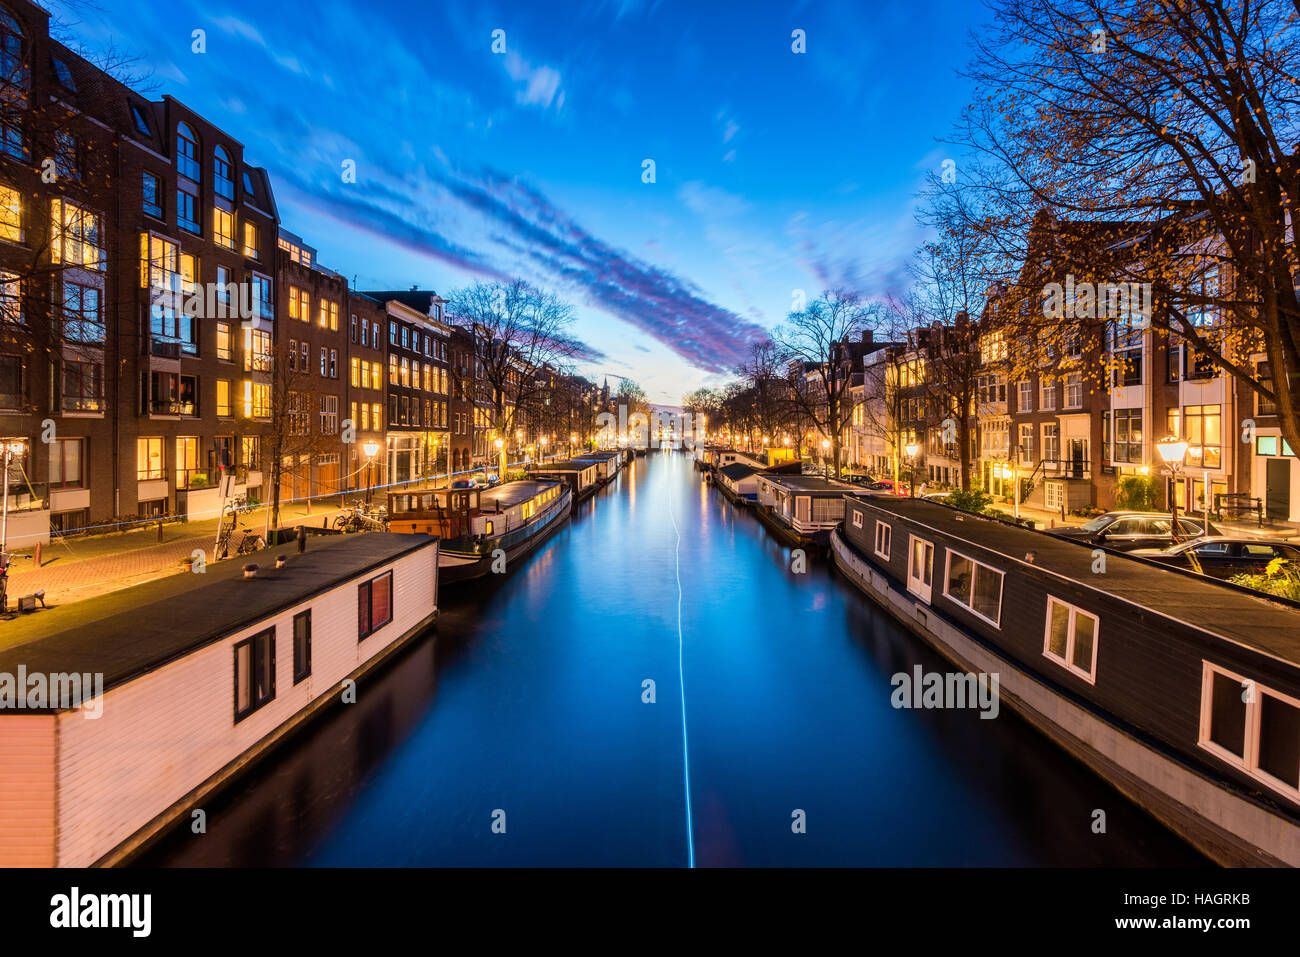 Canal with House Boats in Amsterdam Netherlands - Stock Image